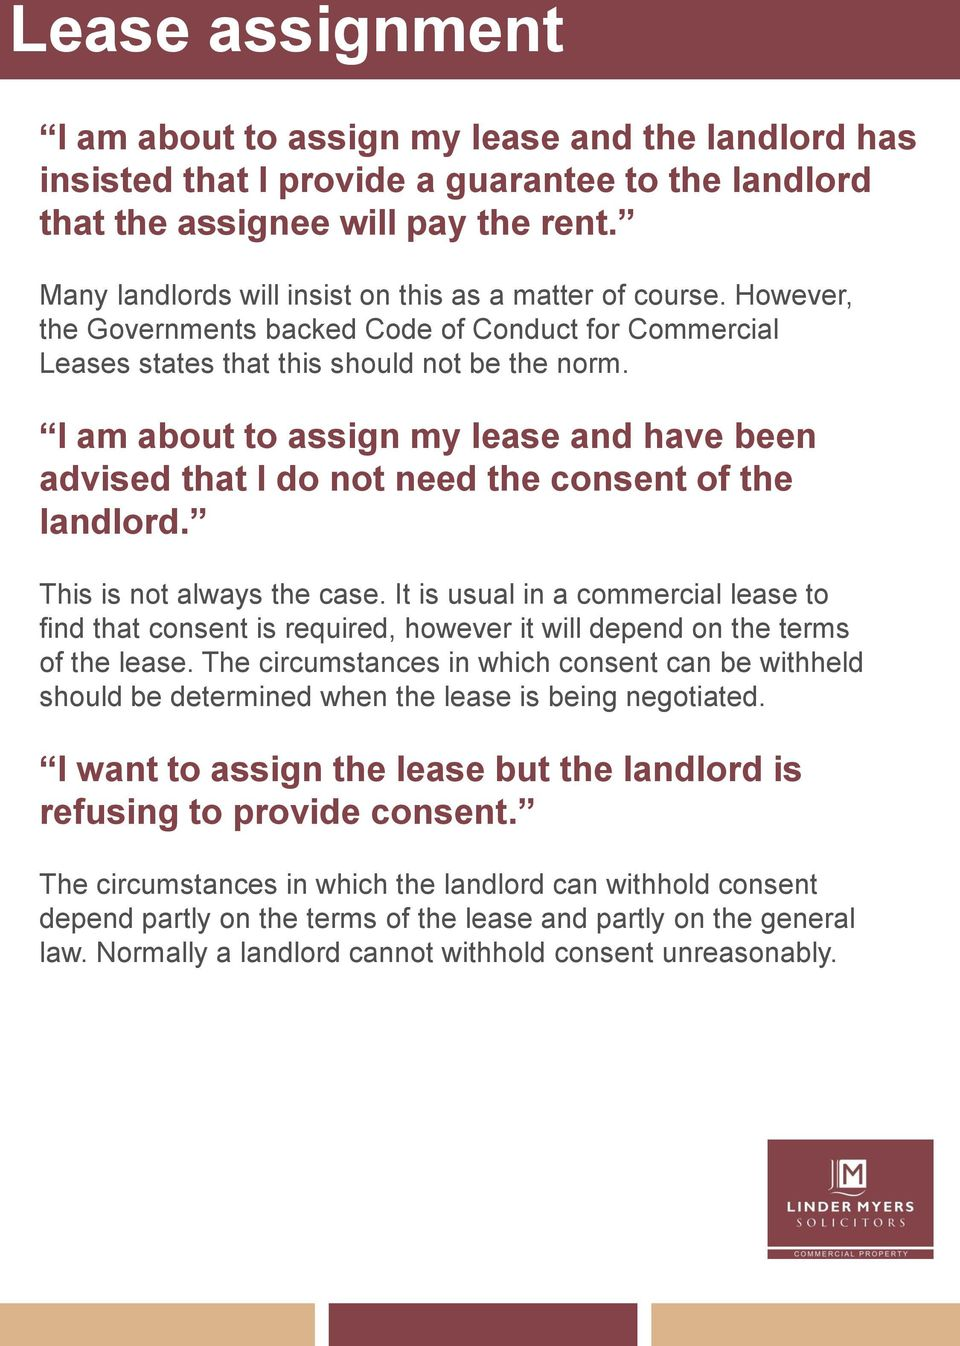 I am about to assign my lease and have been advised that I do not need the consent of the landlord. This is not always the case.